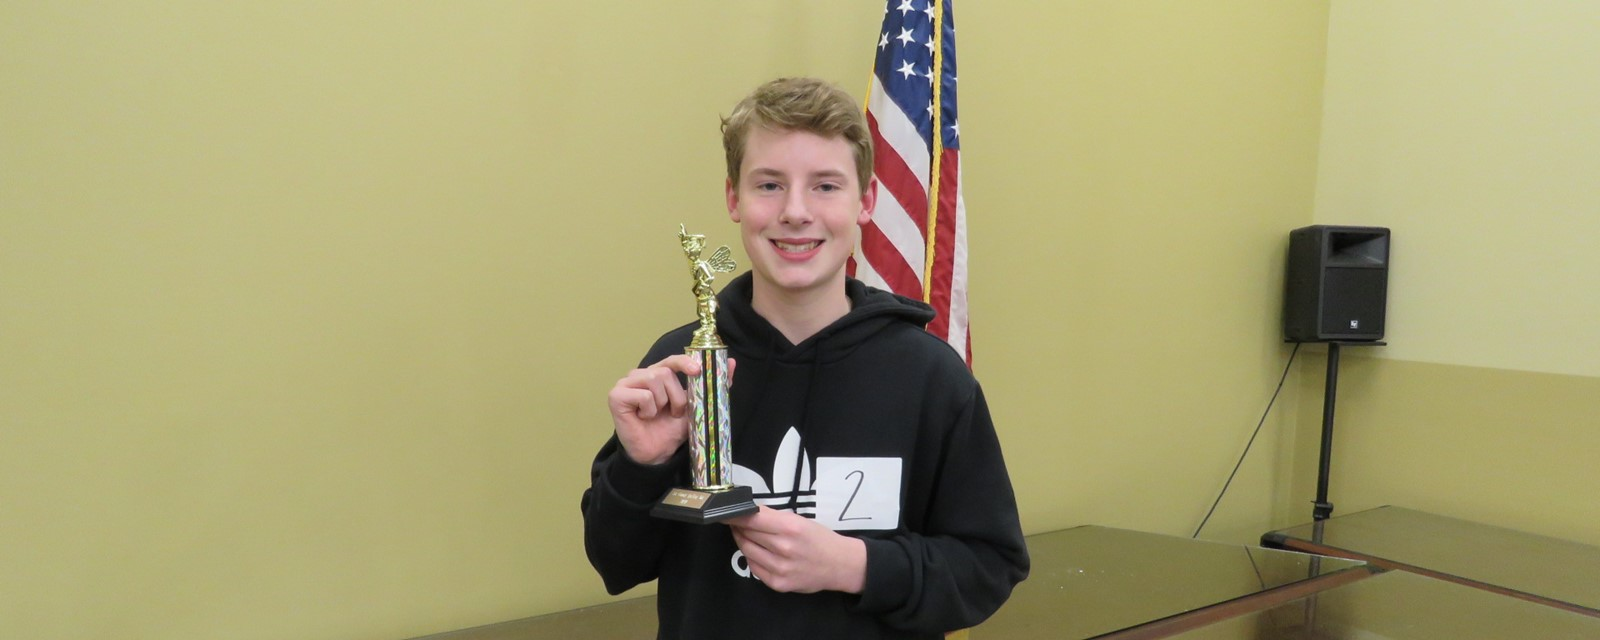 Lee County Spelling Bee Champion